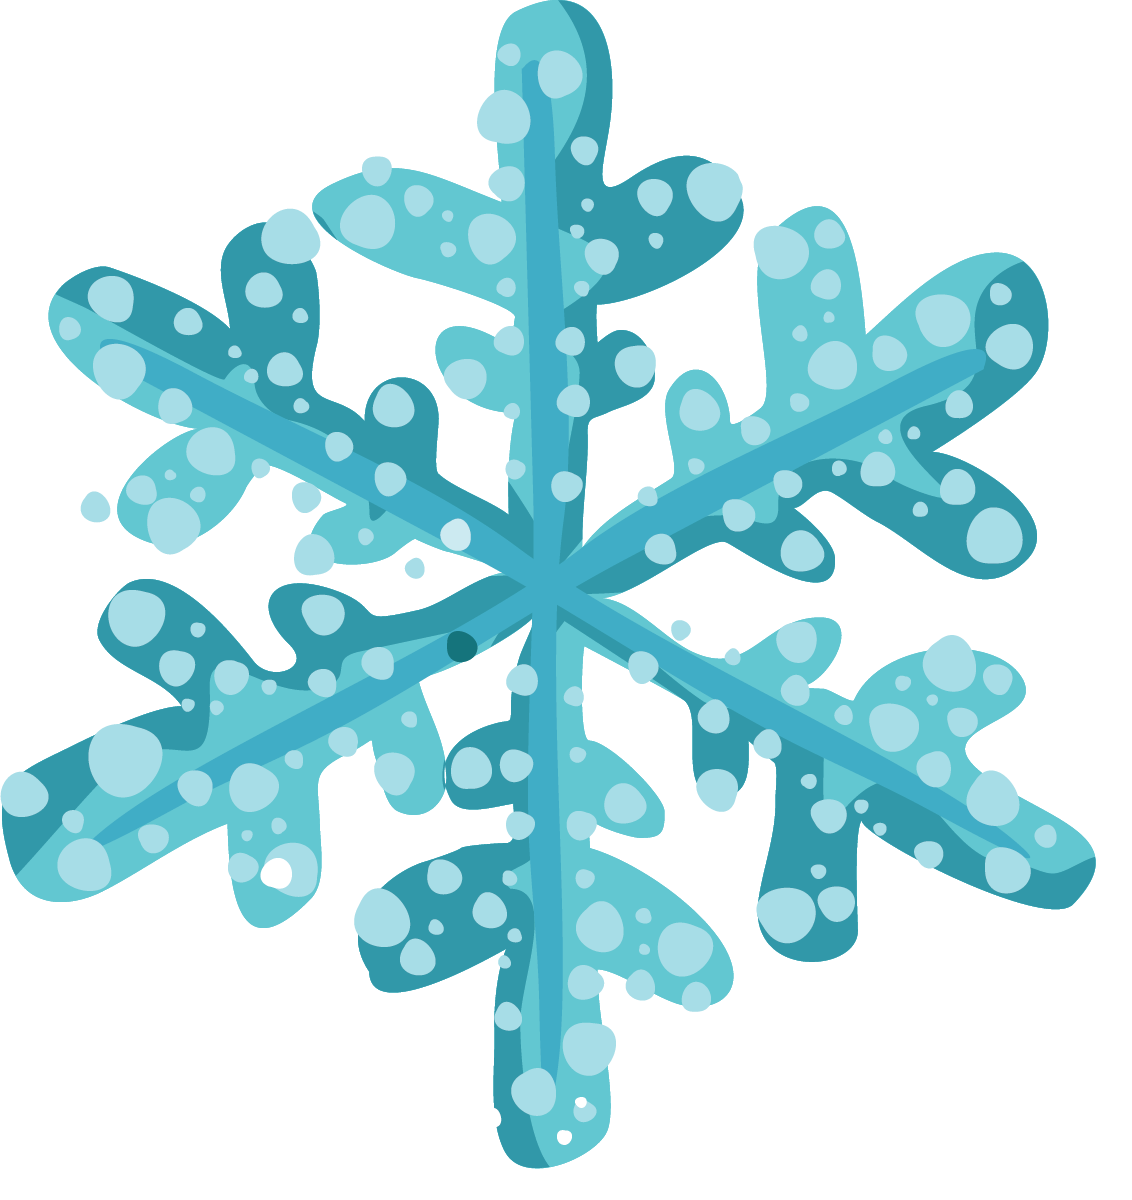 Snow winter clipart svg free download Free Snow Banner Cliparts, Download Free Clip Art, Free Clip Art on ... svg free download